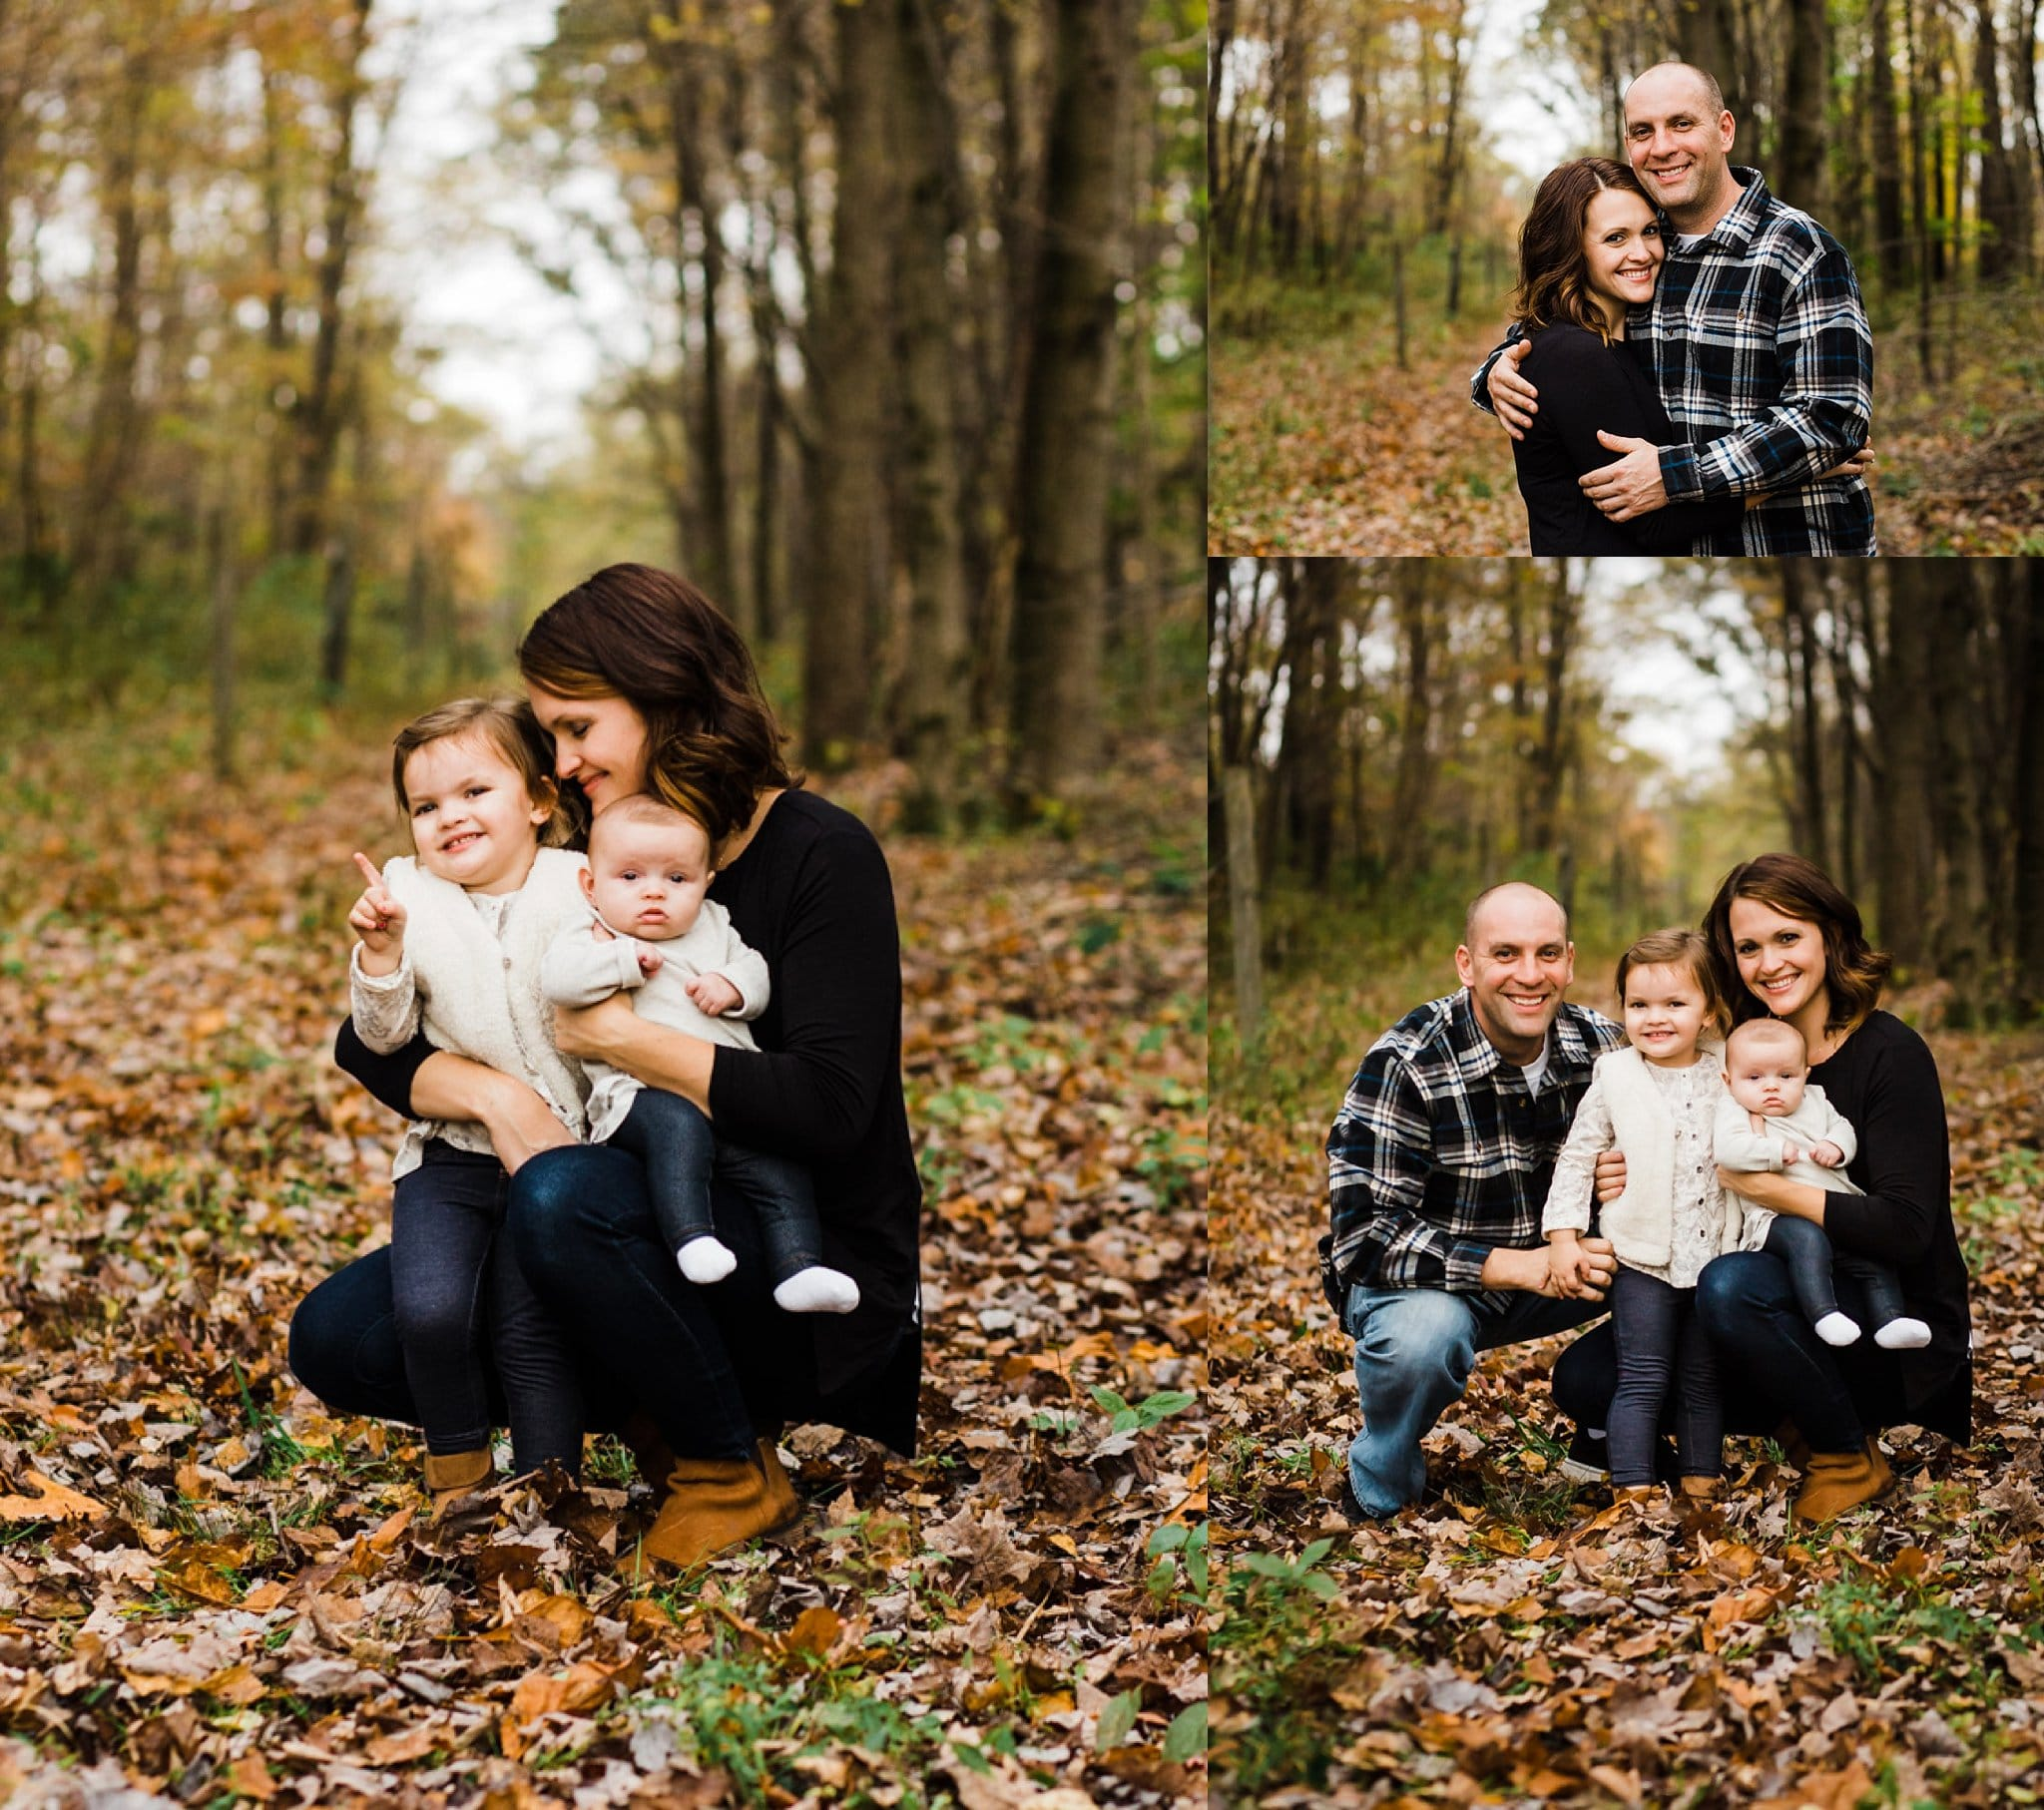 Melissa Lucci and her family